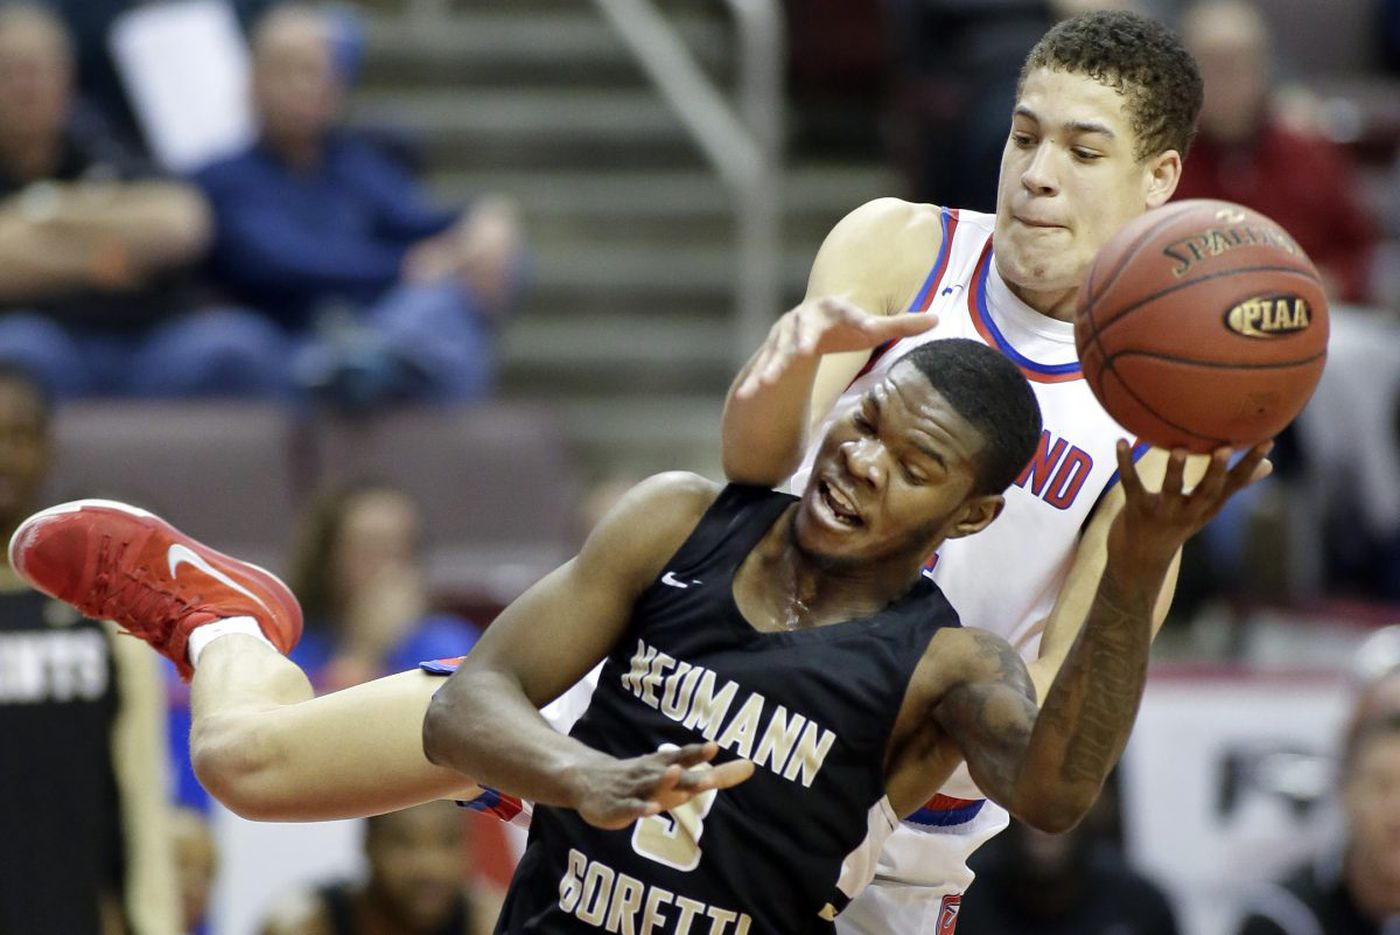 Dymir Montague leads Neumann-Goretti to fifth straight PIAA state championship